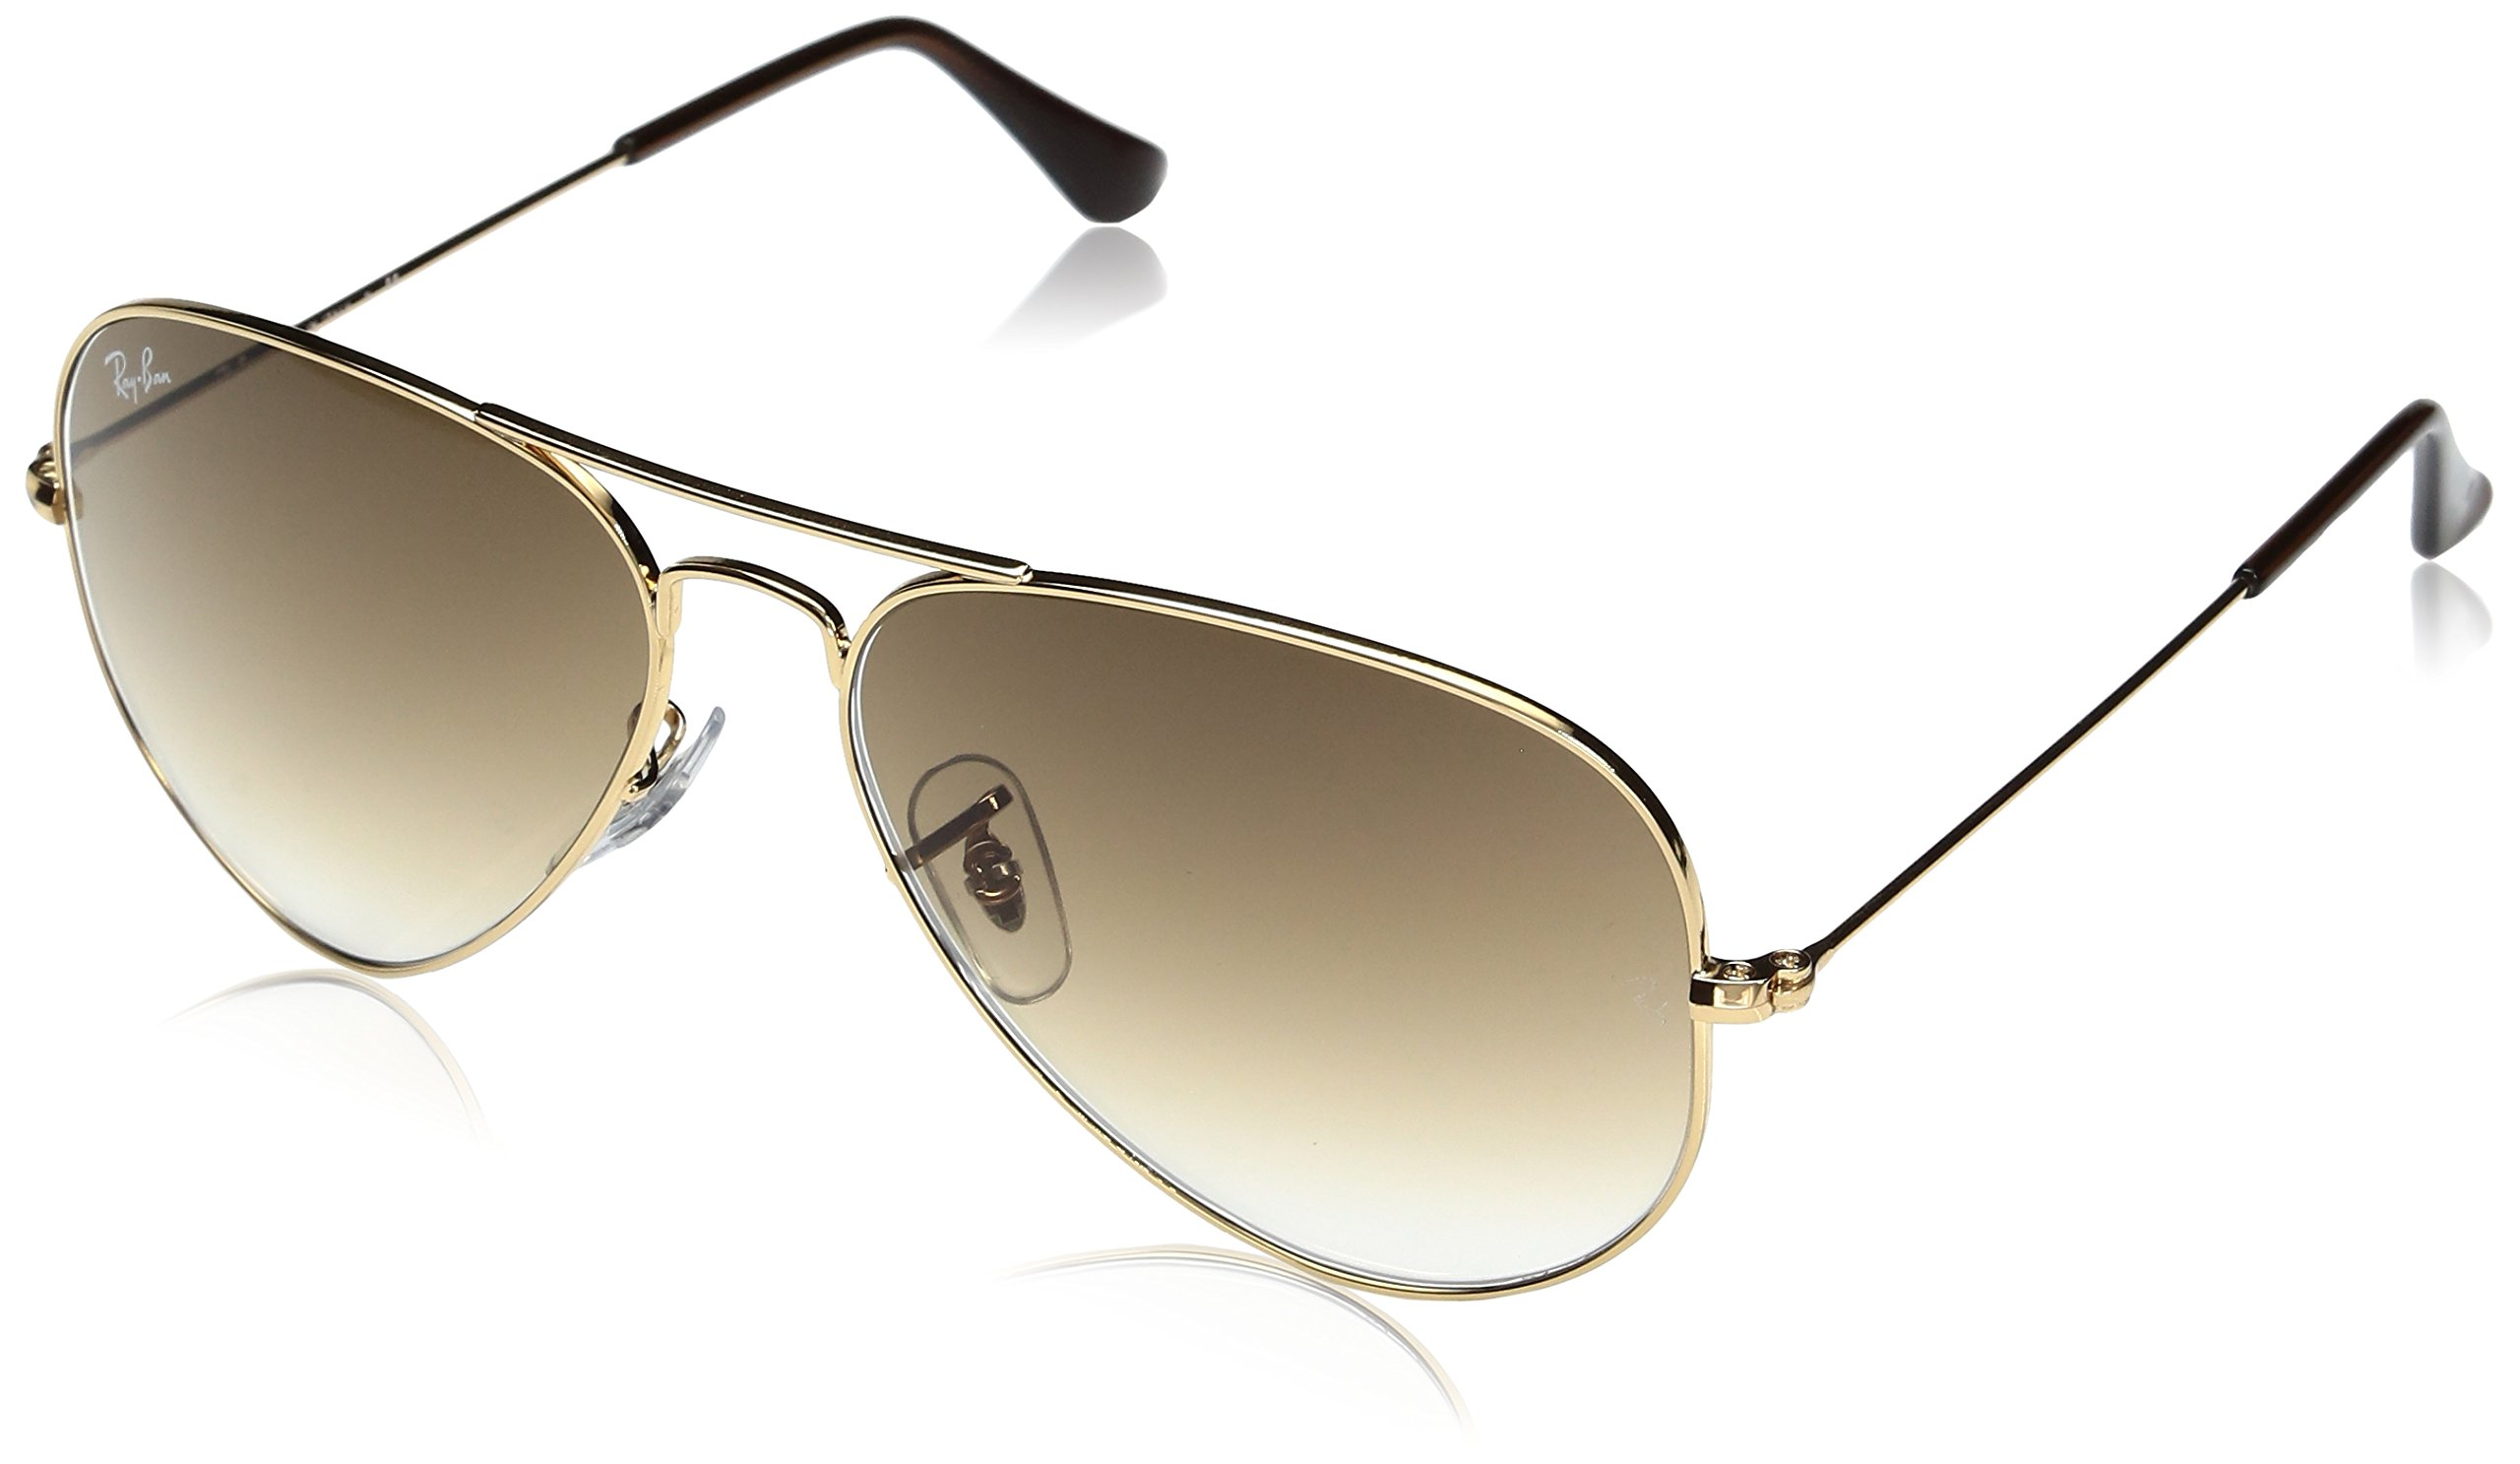 Ray-Ban Aviator Classic, Antique Gold/ Crystal Green, One Size